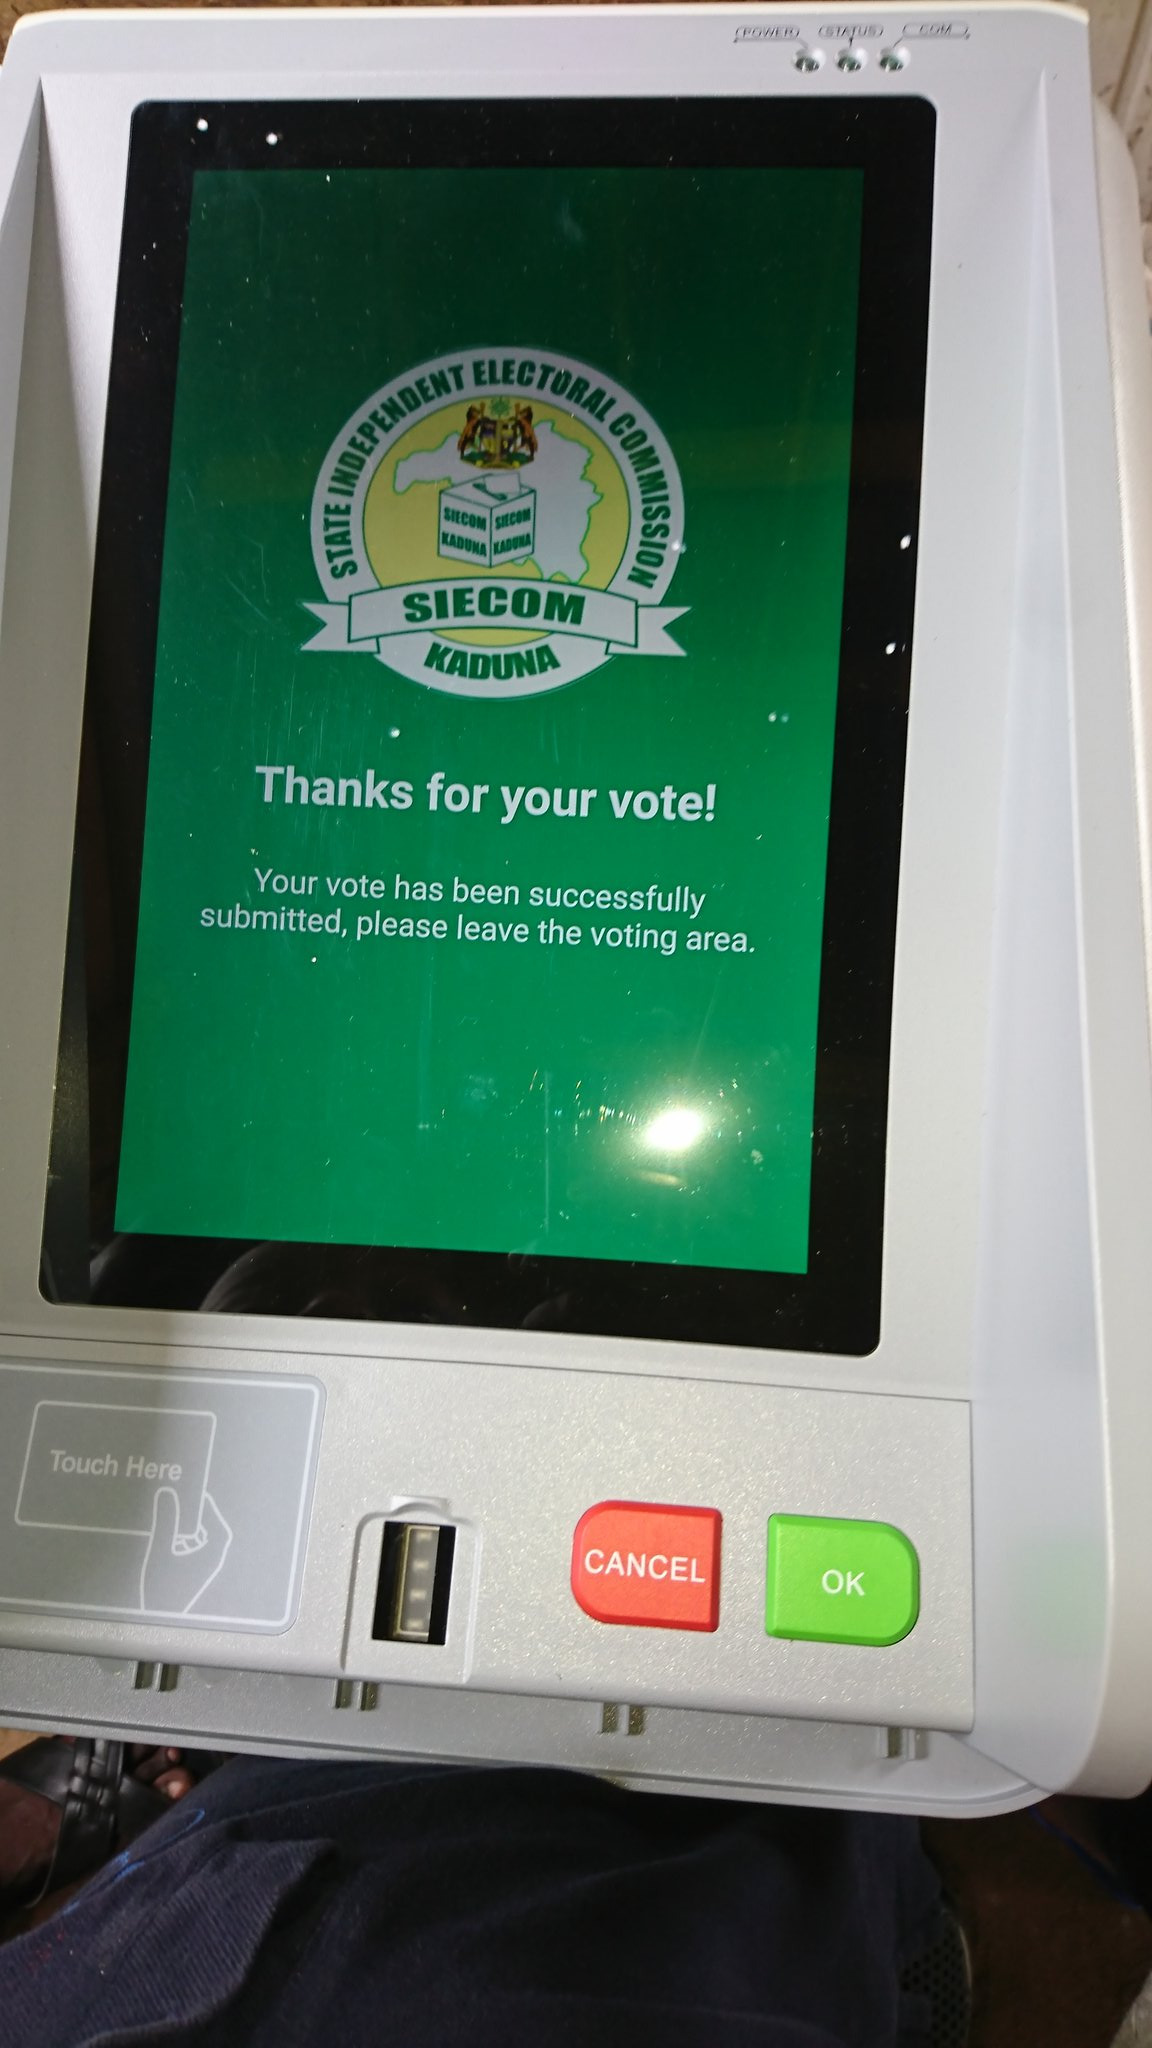 Kaduna State 2018 LG Elections: State Government Uses Electronic Voting Machines, First of Its Kind in Nigeria, Second in Africa